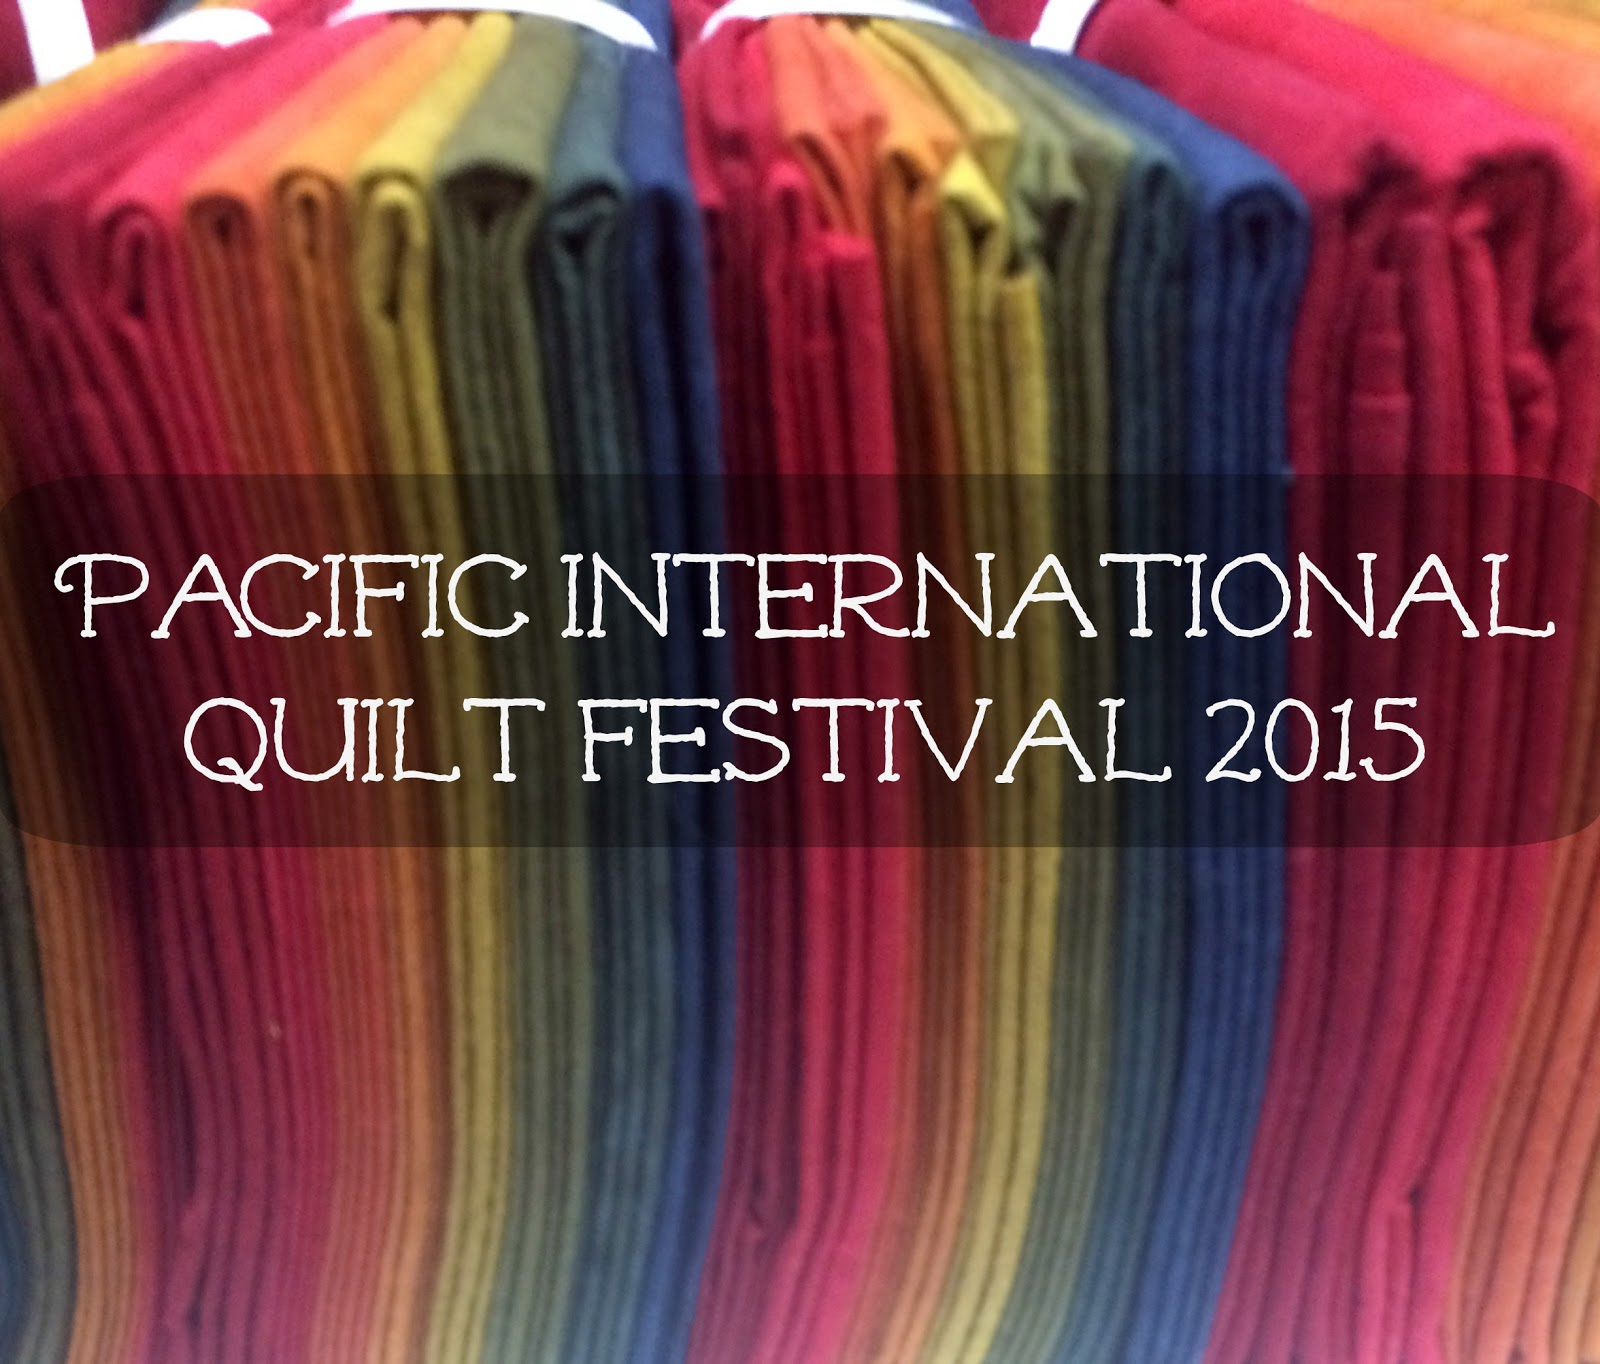 Pacific International Quilt Festival 2015